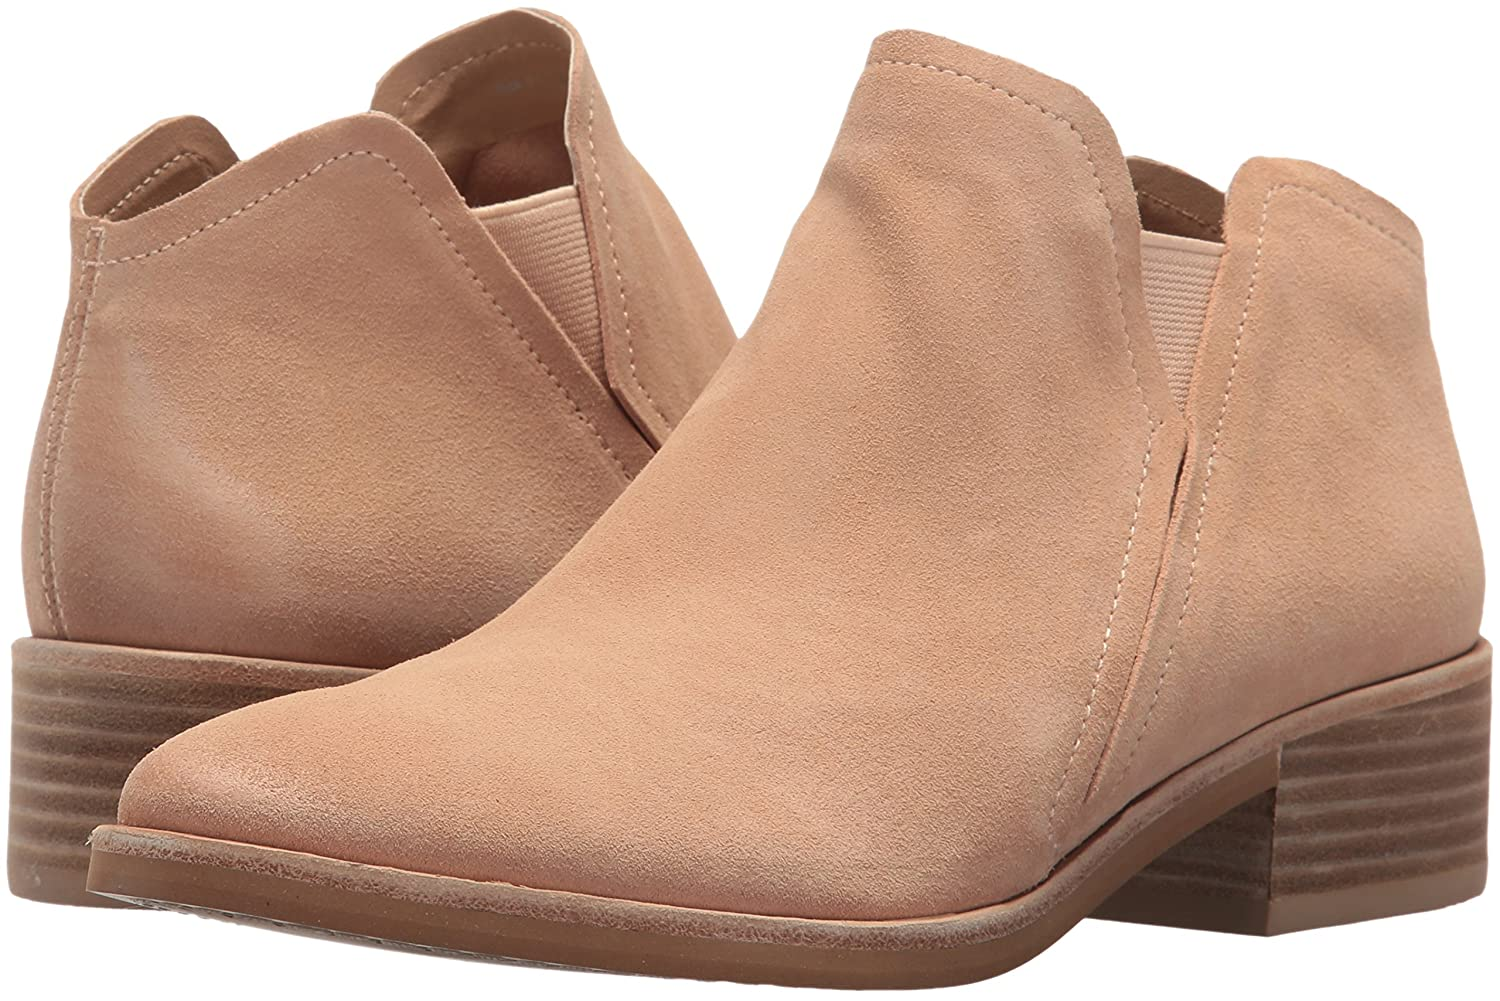 Dolce Vita Womens TAY Ankle Boot Blush Suede 7.5 Medium US